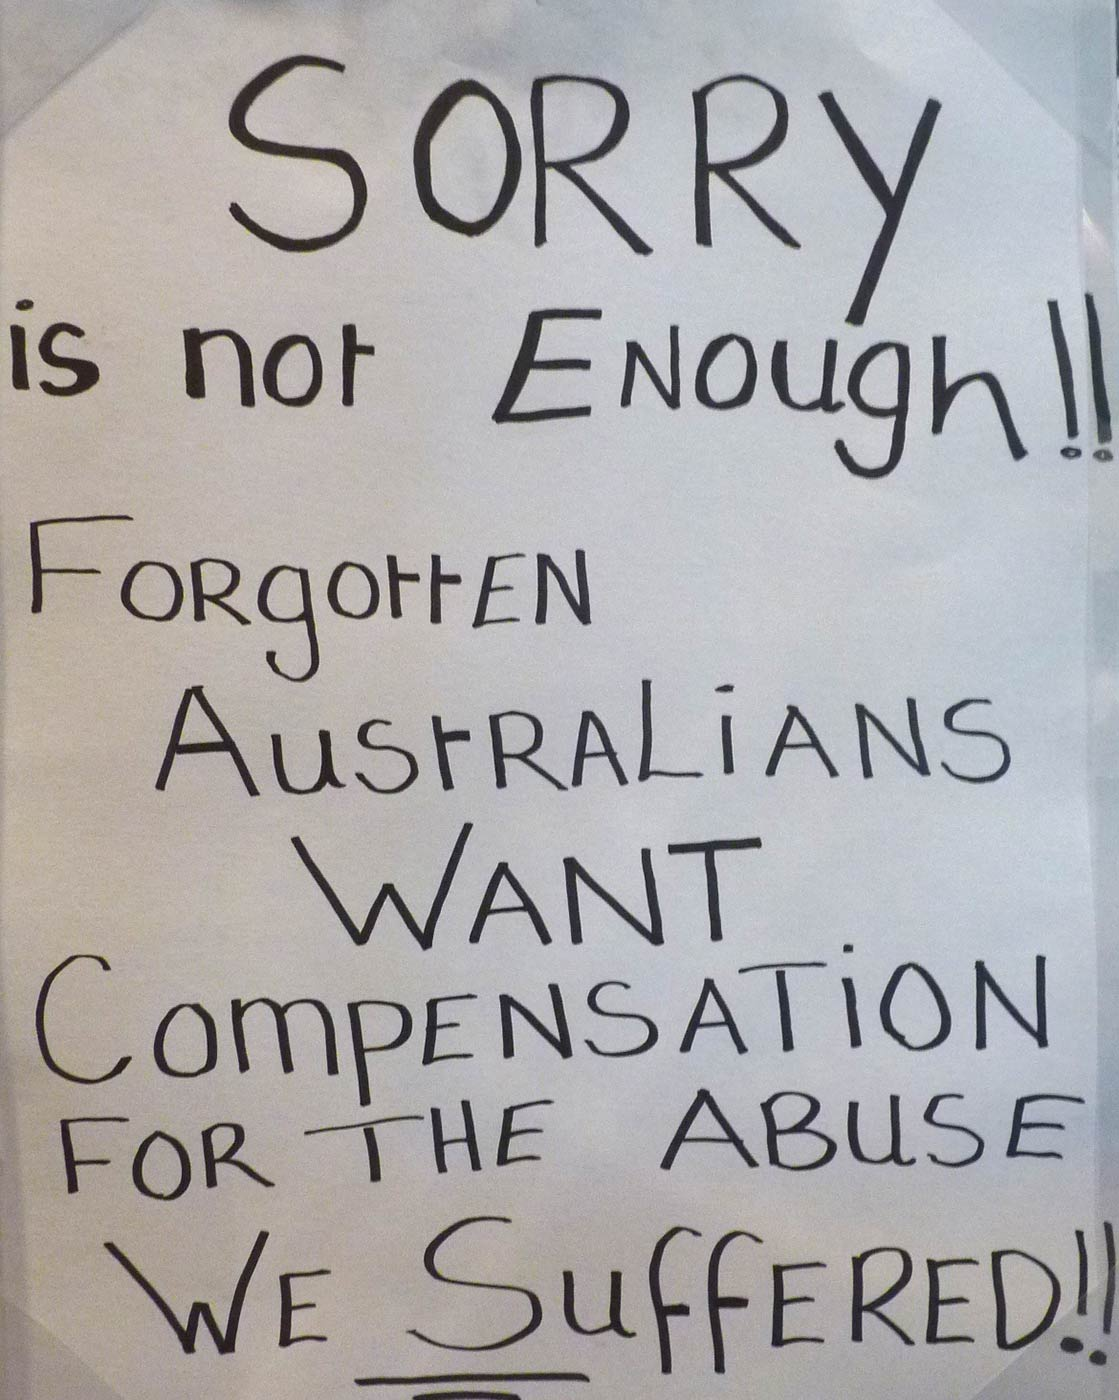 A protest placard of white cardboard with black handwritten text that reads, 'SORRY / is not Enough!! / FORgottEN / AustRaLiANS / WANT / CompENSATiON / FOR THE ABuSE / WE SuffERED!!'